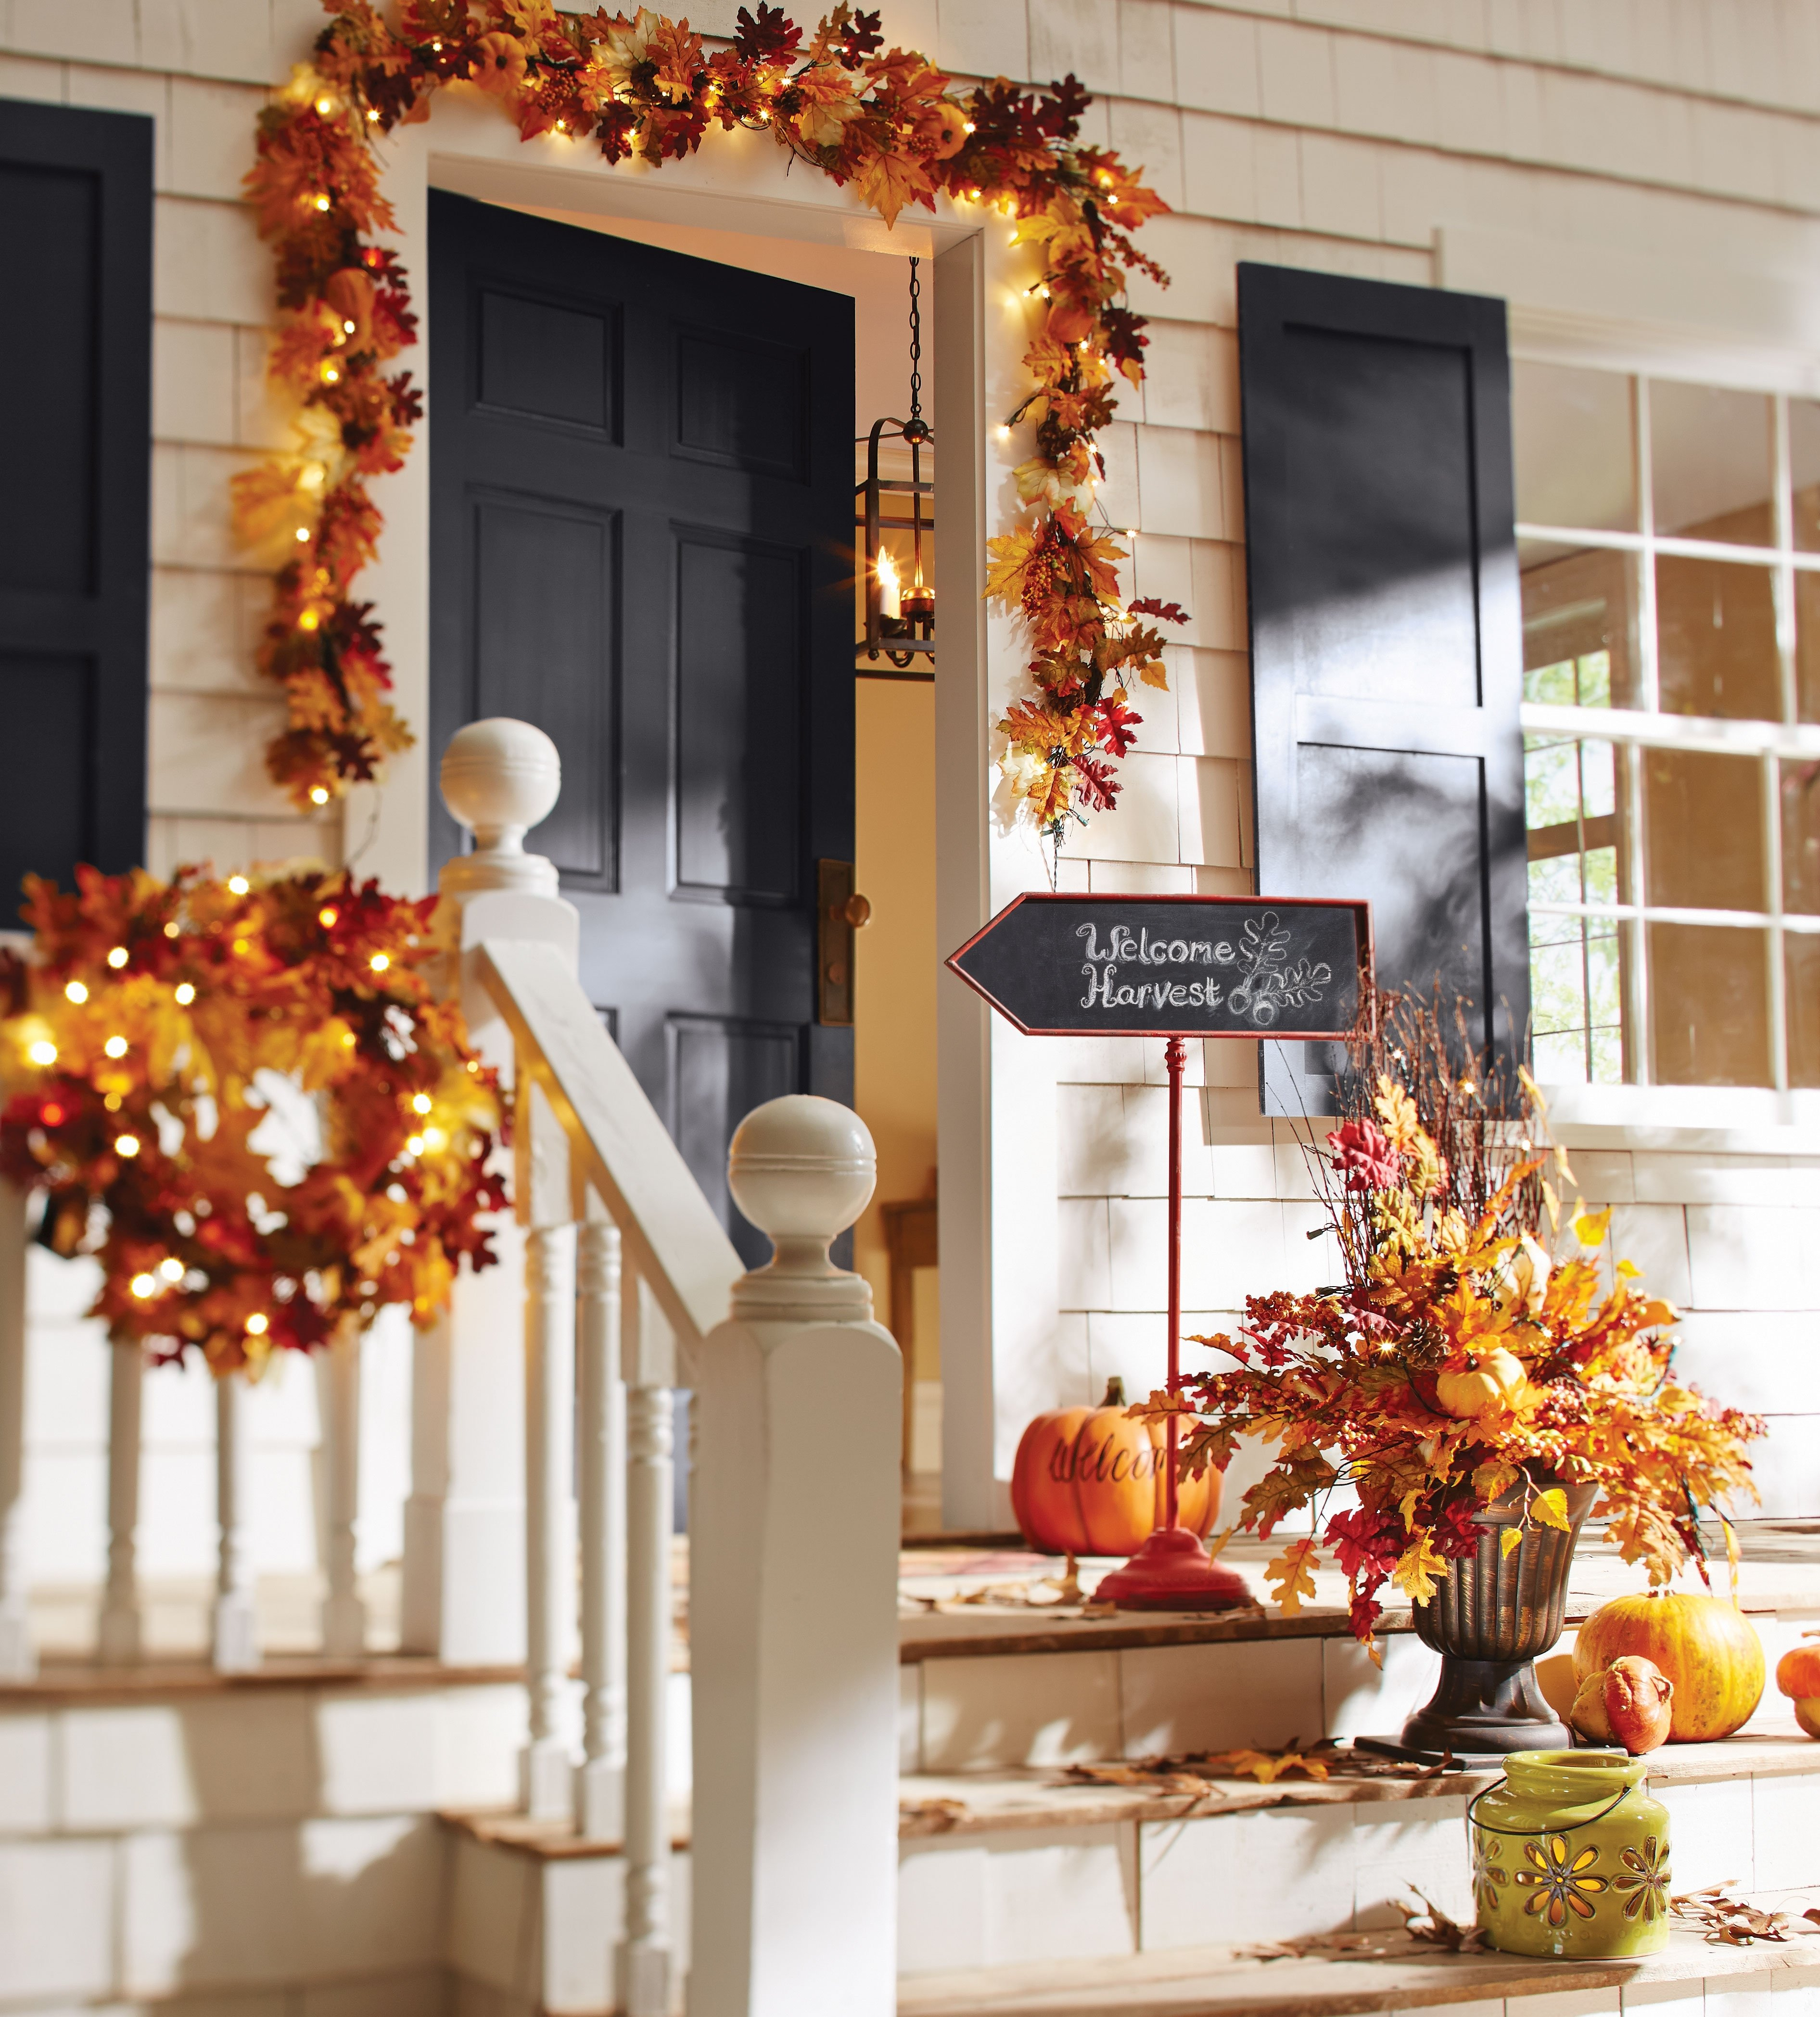 10 Lovely Front Porch Decorating Ideas For Fall fall decorating ideas for your front porch and entryway 1